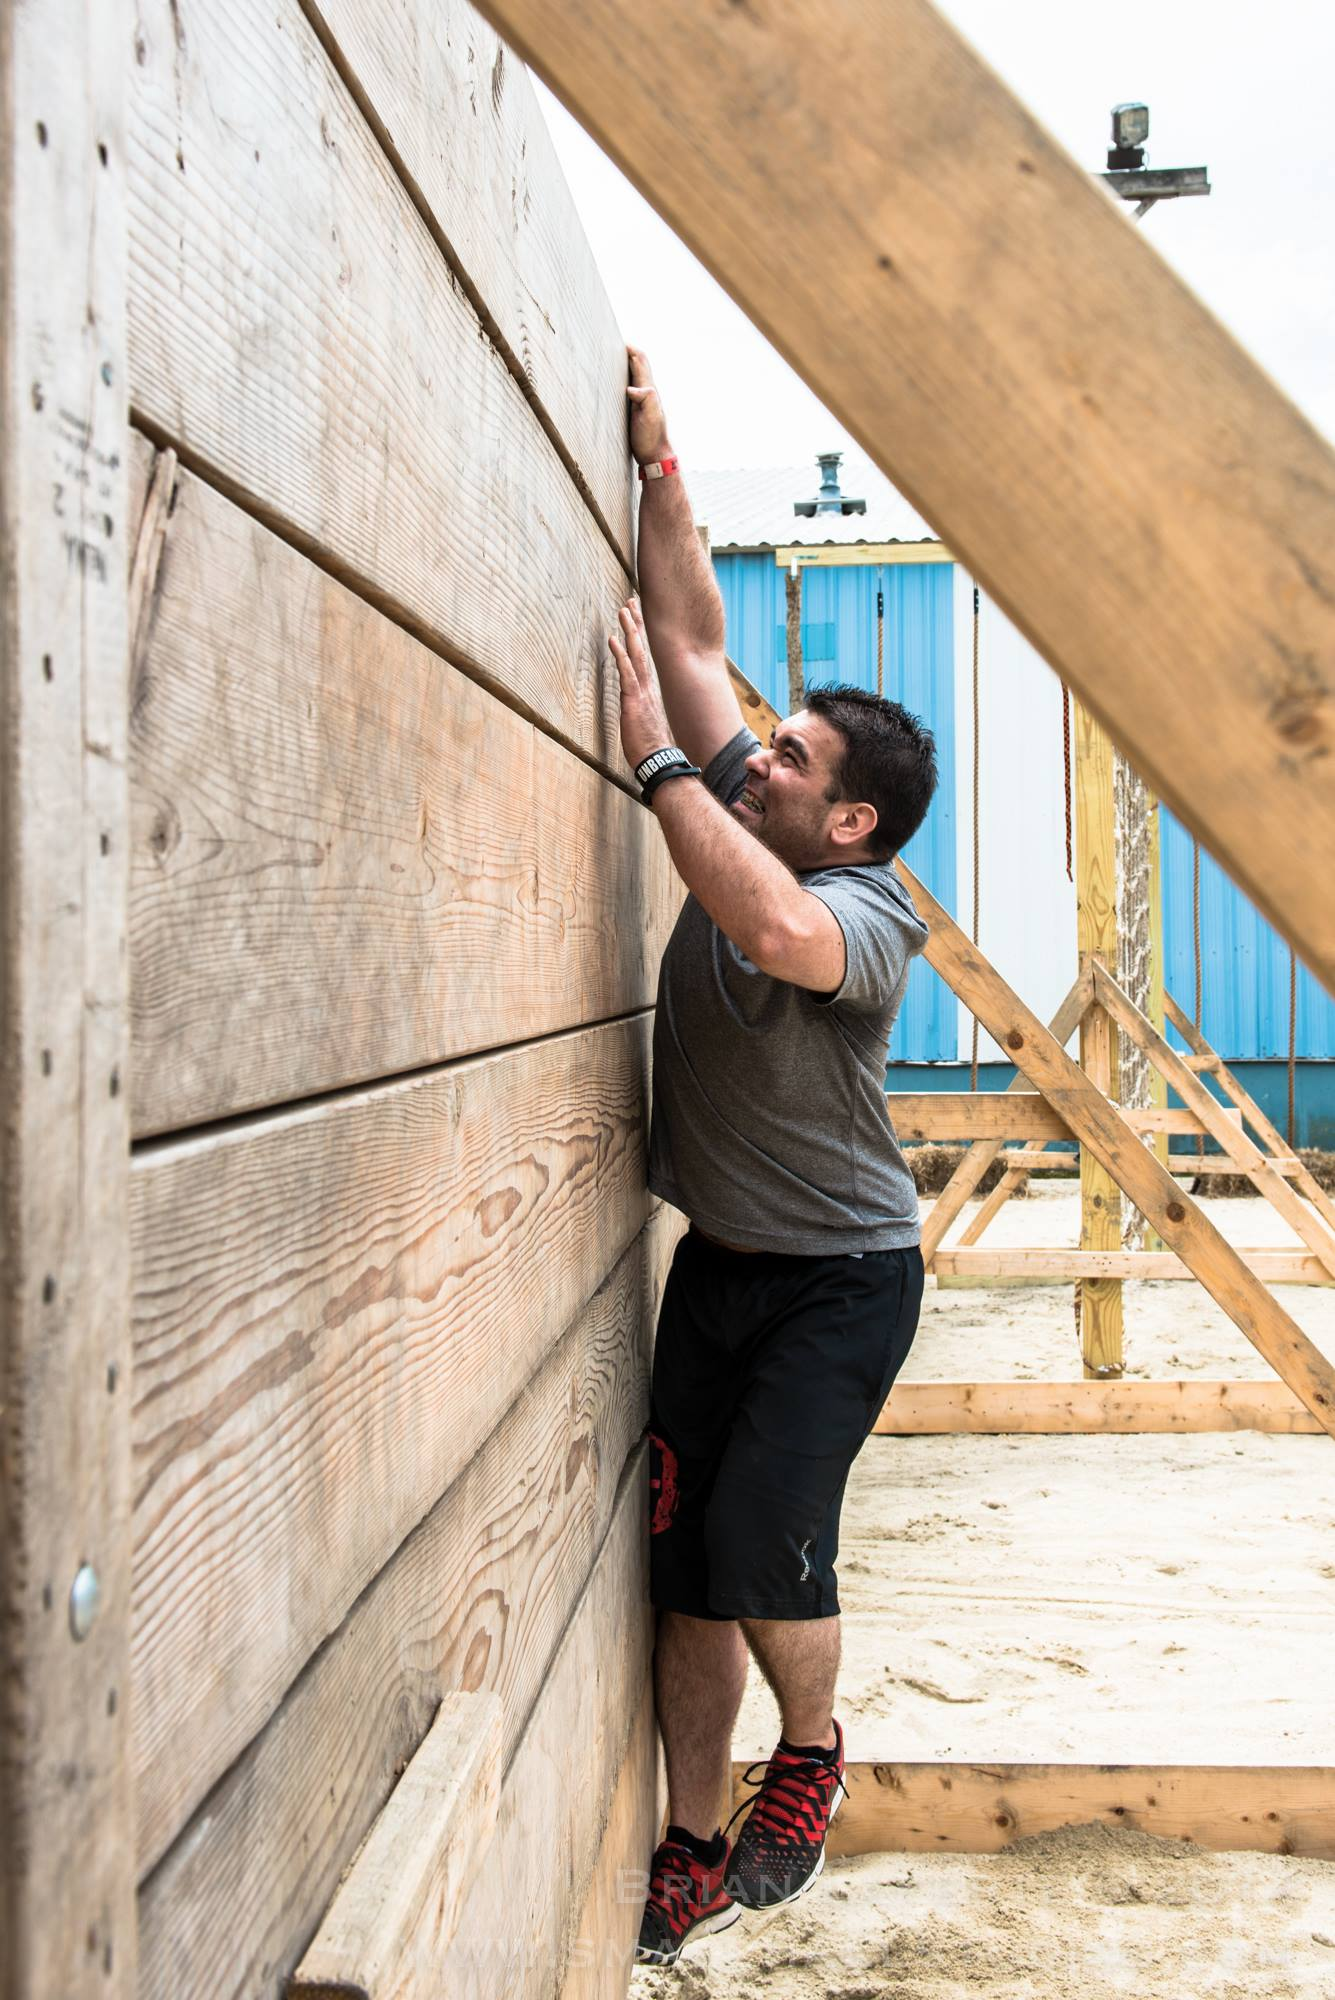 Obstacle Course Race Wall Climb